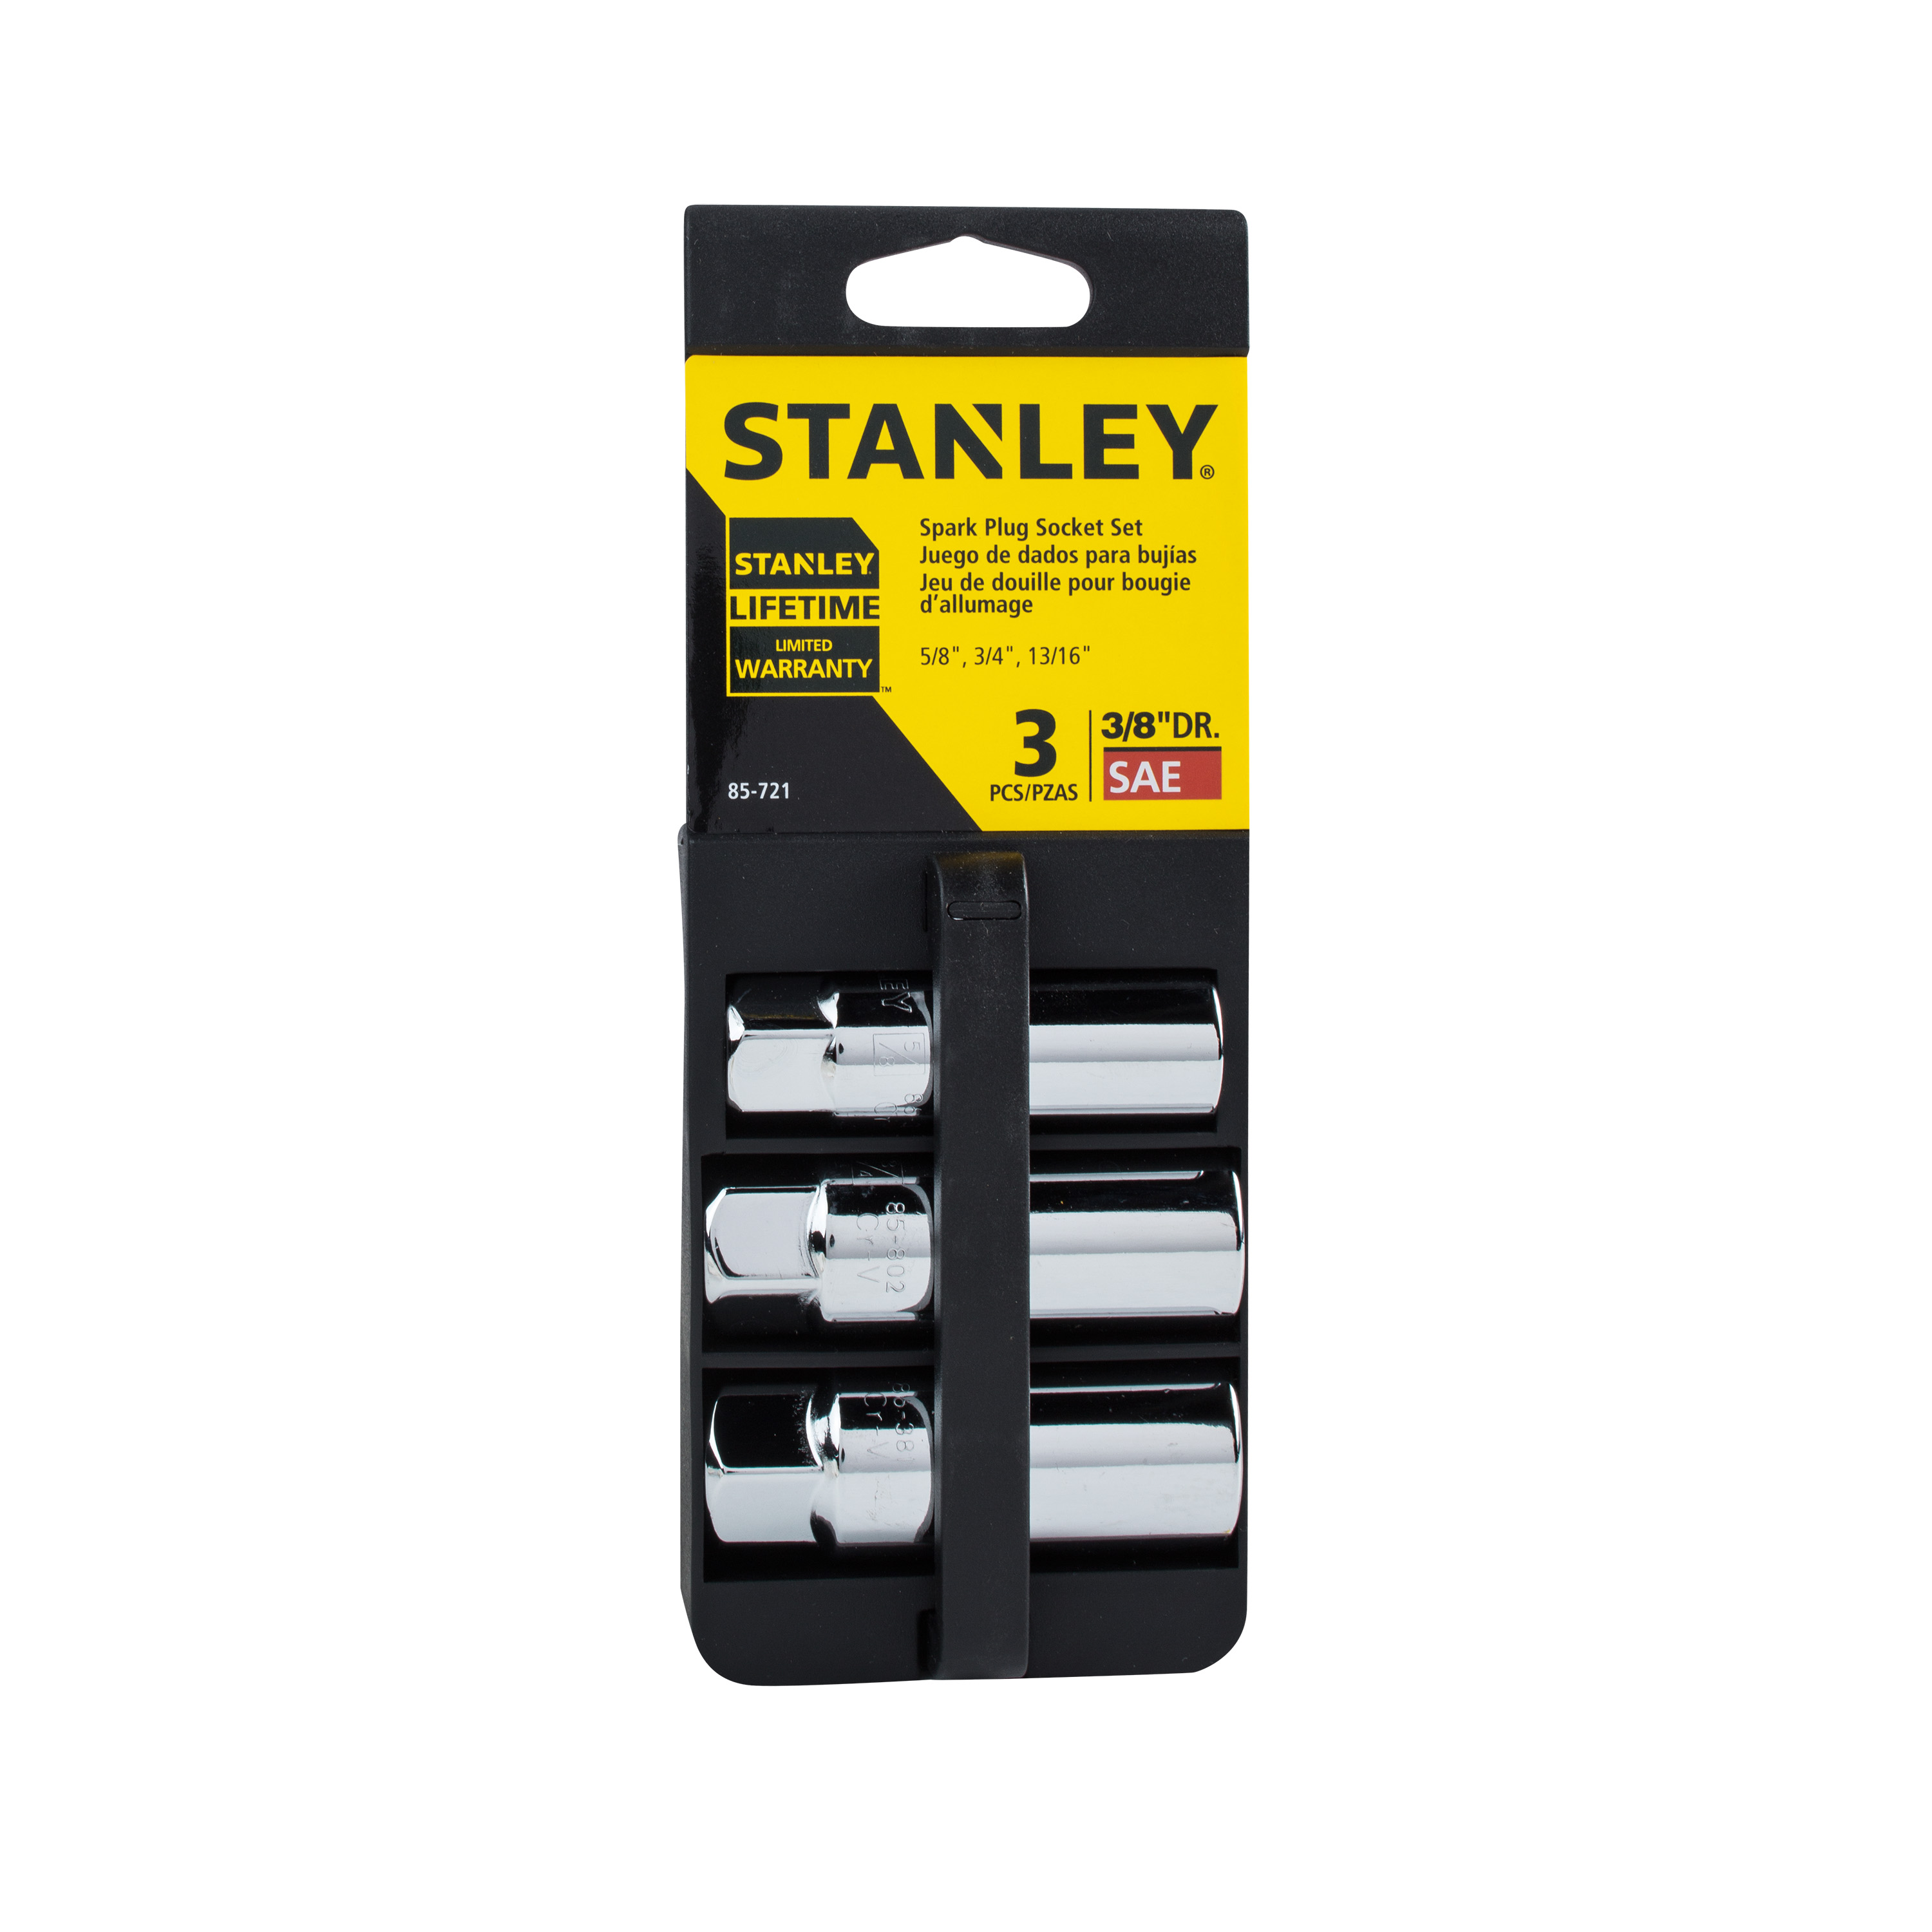 STANLEY 85-721 3/8-Inch 6-Point Spark Plug Socket Set, 3-Piece